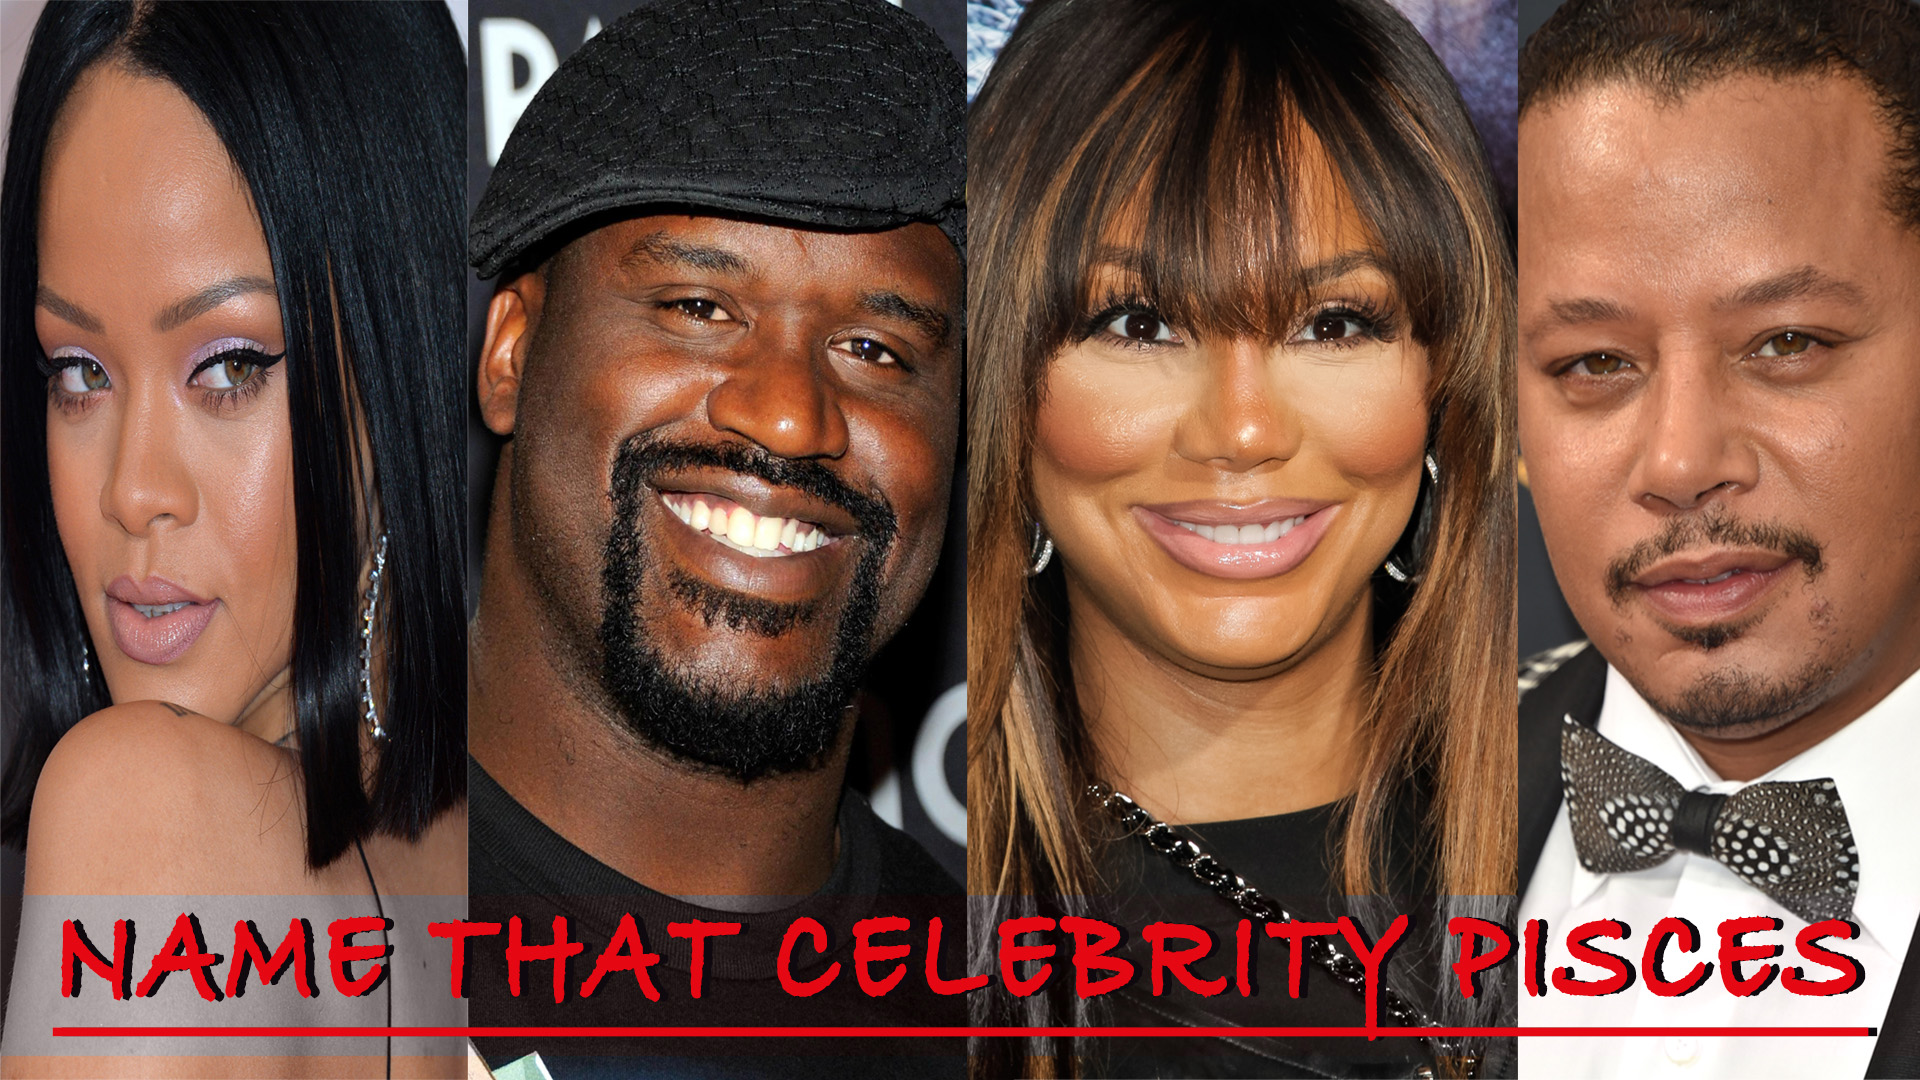 Name That Celebrity Pisces Quiz (TLC & Hot)